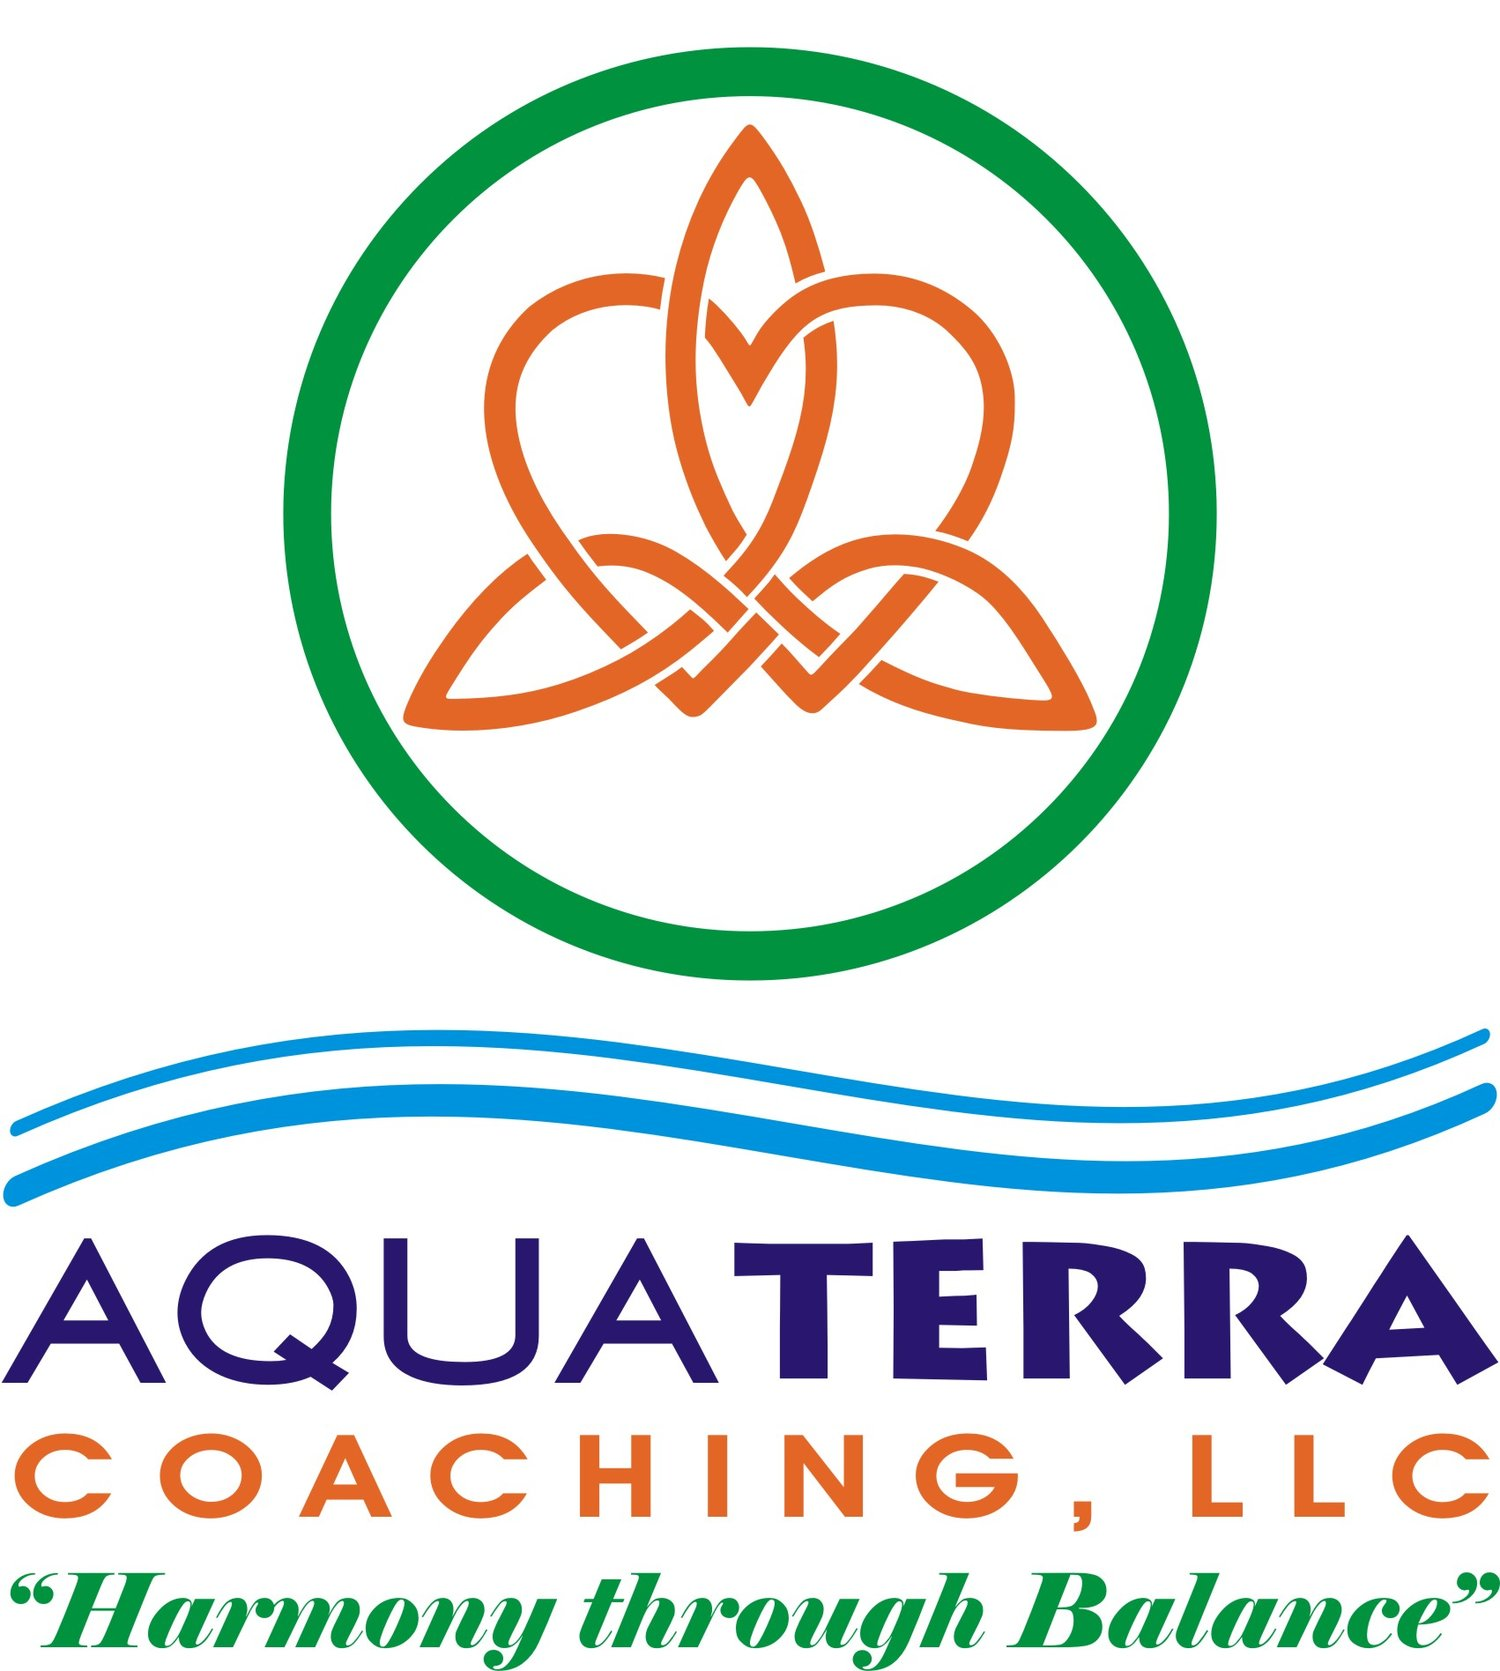 AQUATERRA COACHING